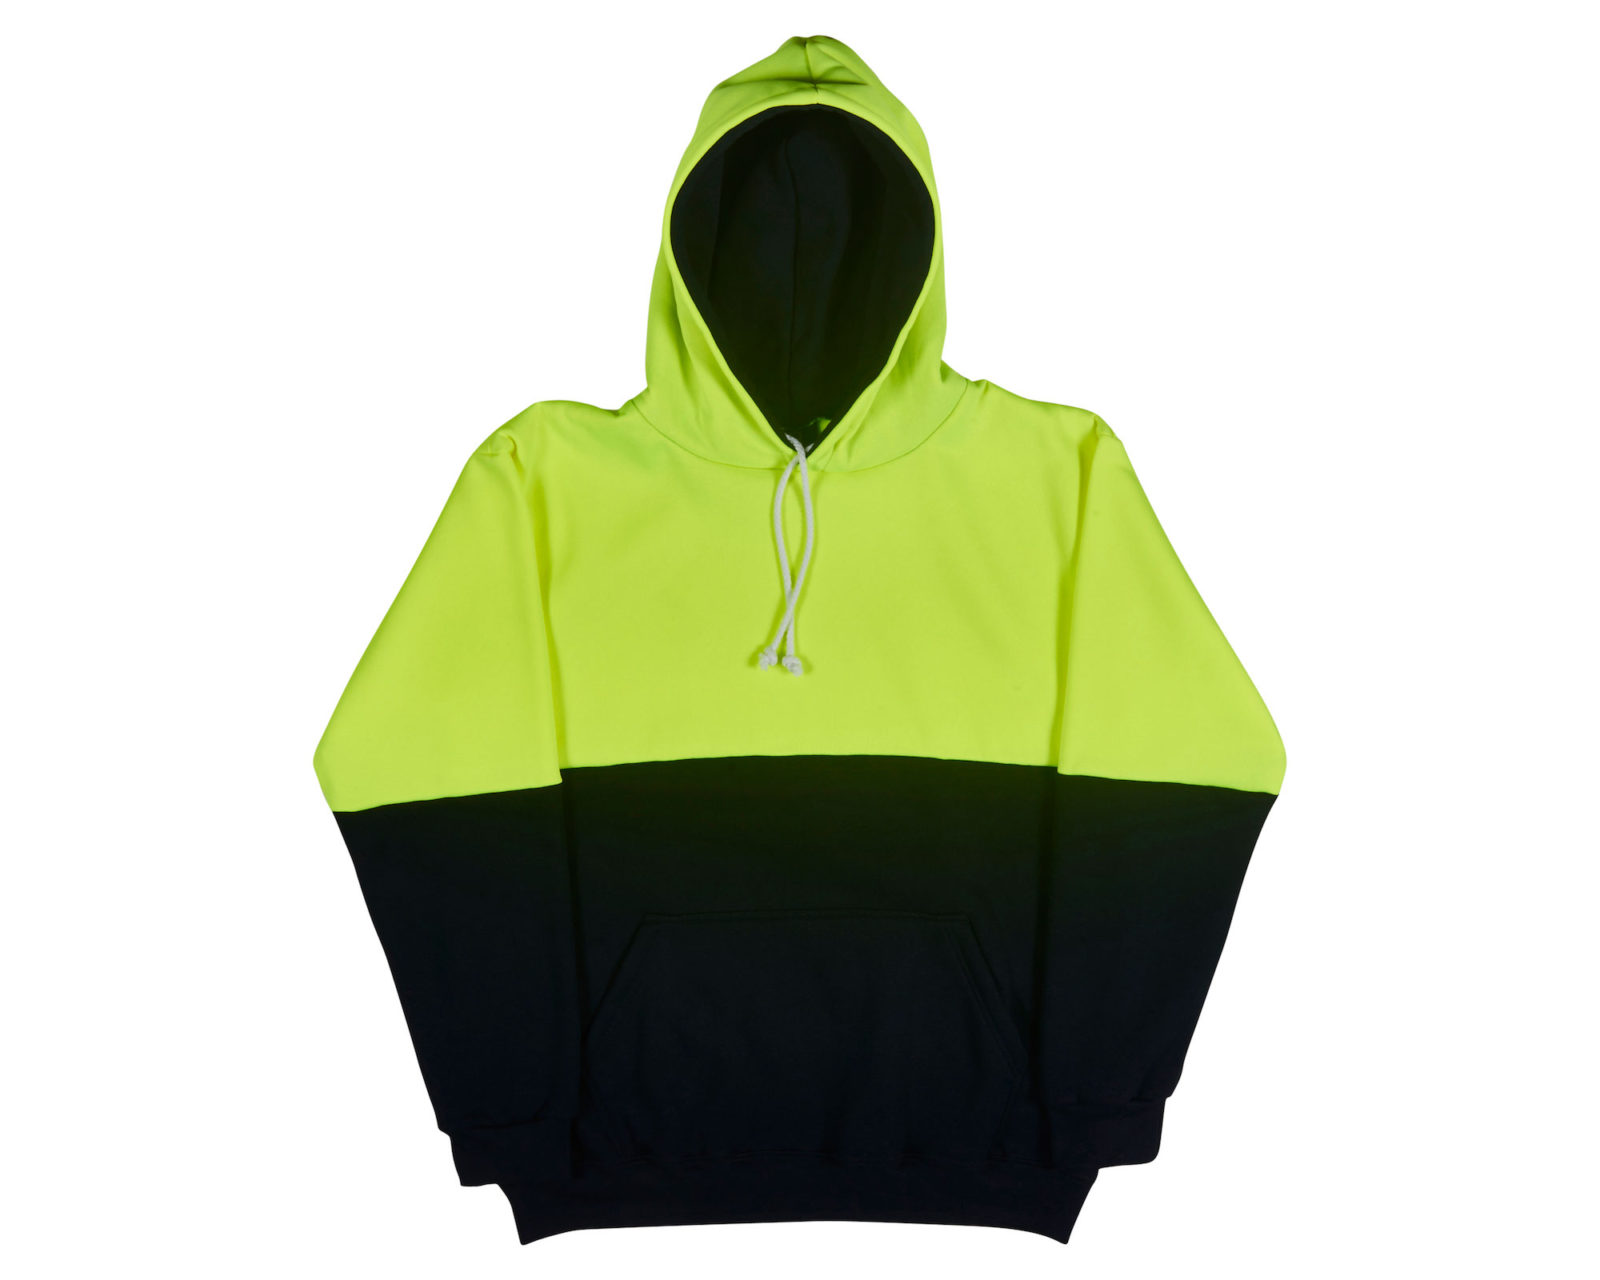 Qualitops Mens Hi Vis Two Tone Hoodie Polycotton Australian made clothing